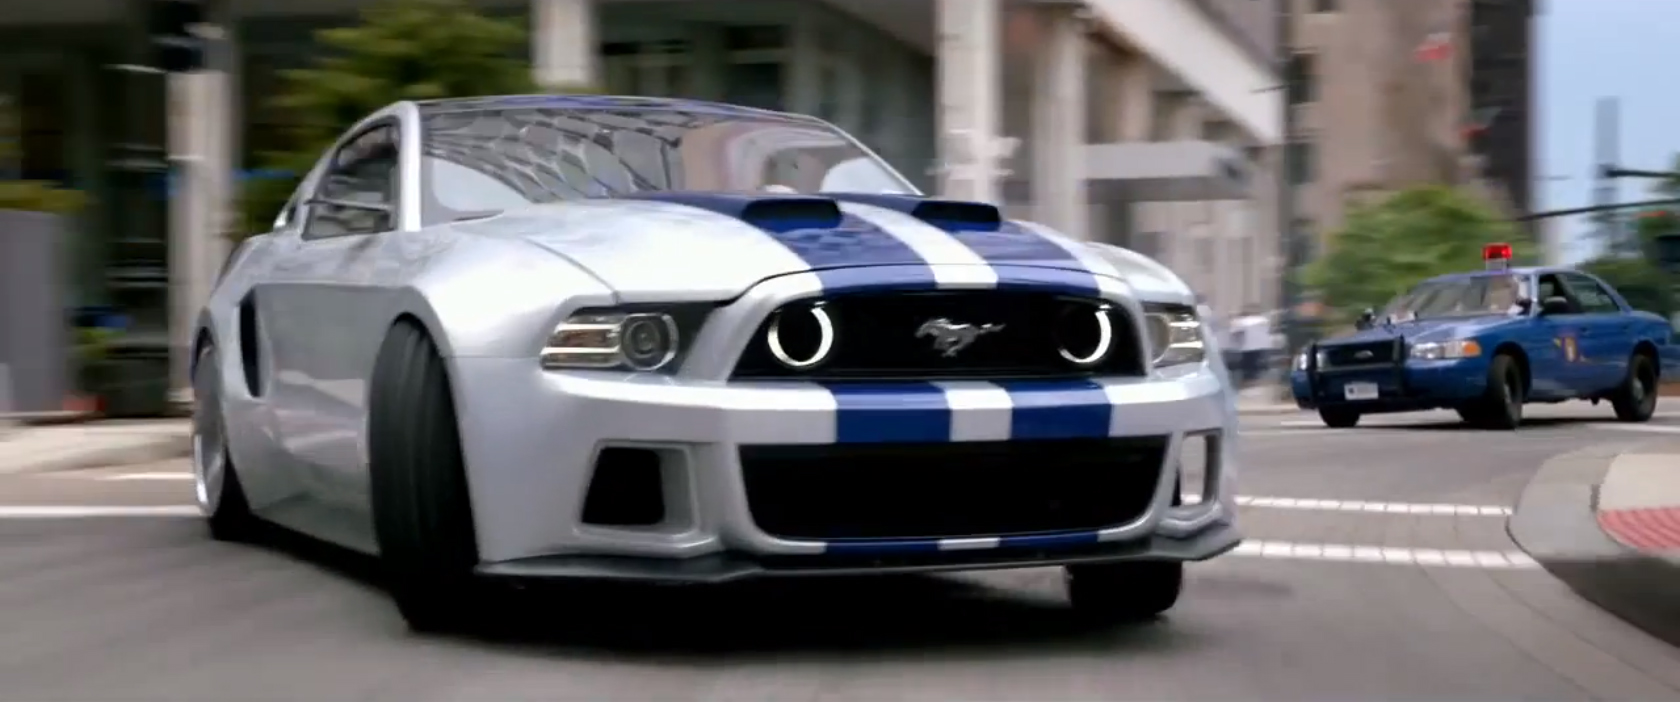 Need for speed trailer 1 review tim 39 s film reviews for Chaise auto